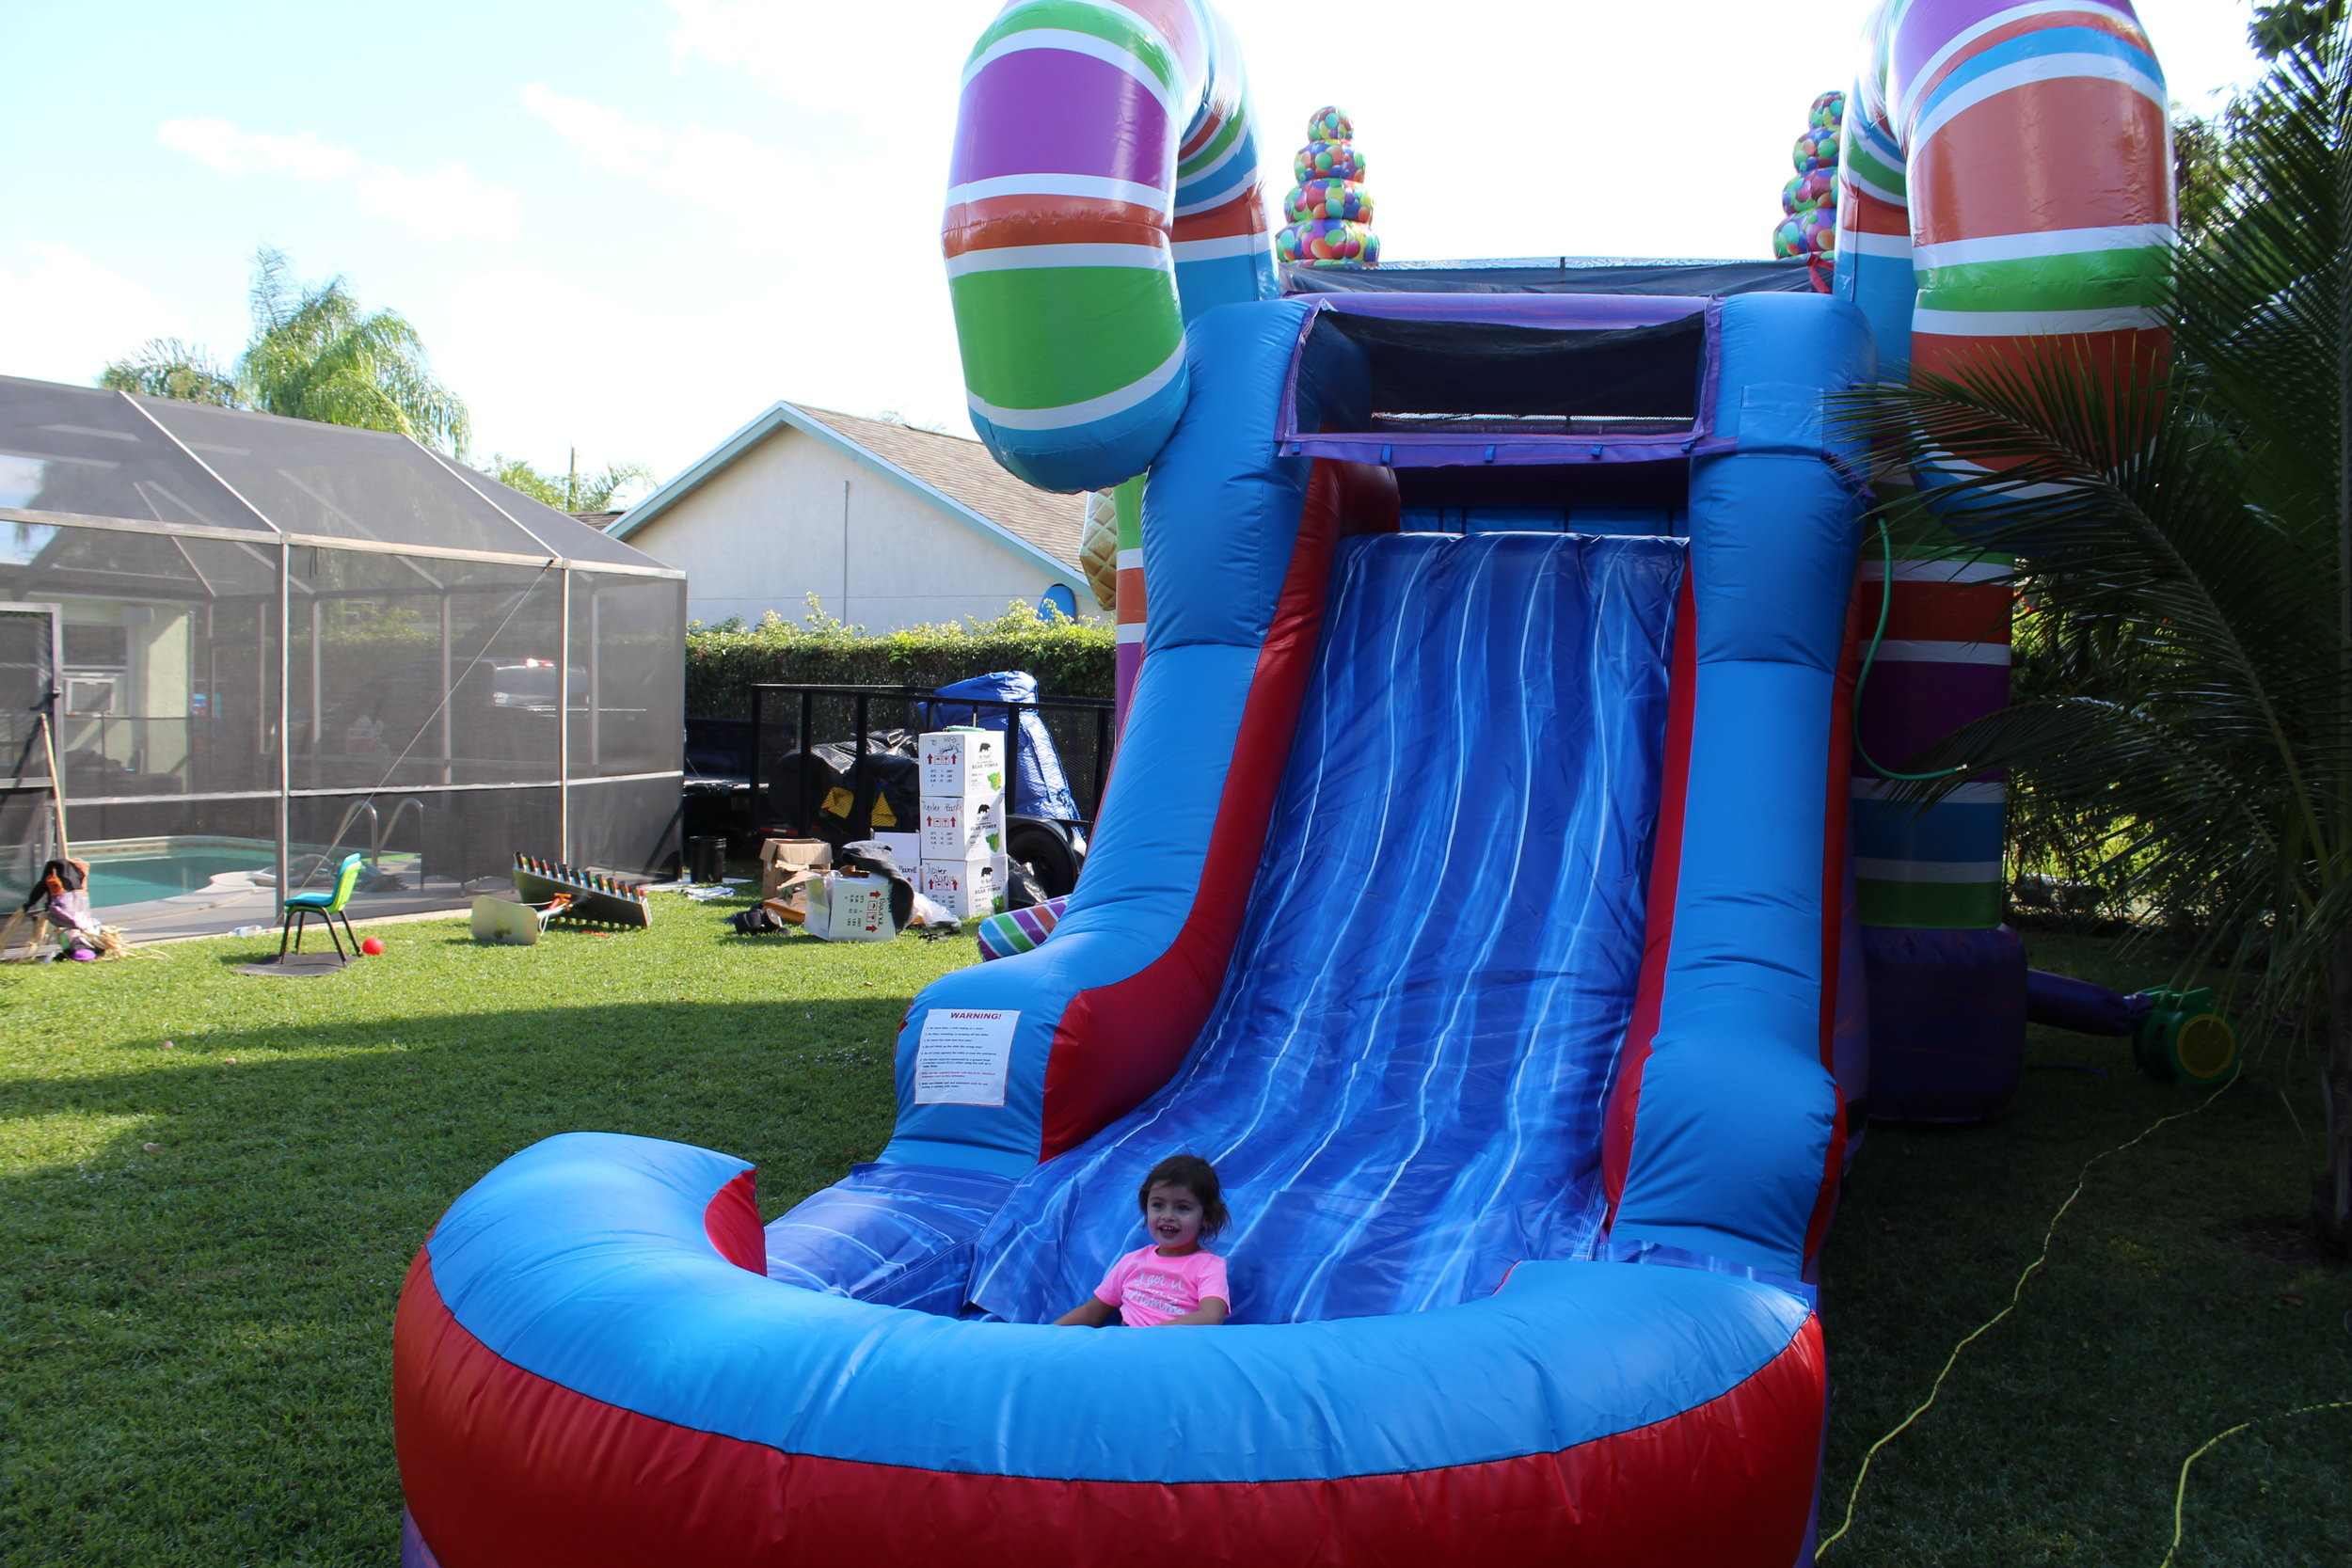 sugarshack-candylandthemedunit-bouncehouse-waterslide-icecreamsocial-photobooth-rockwall.jpg